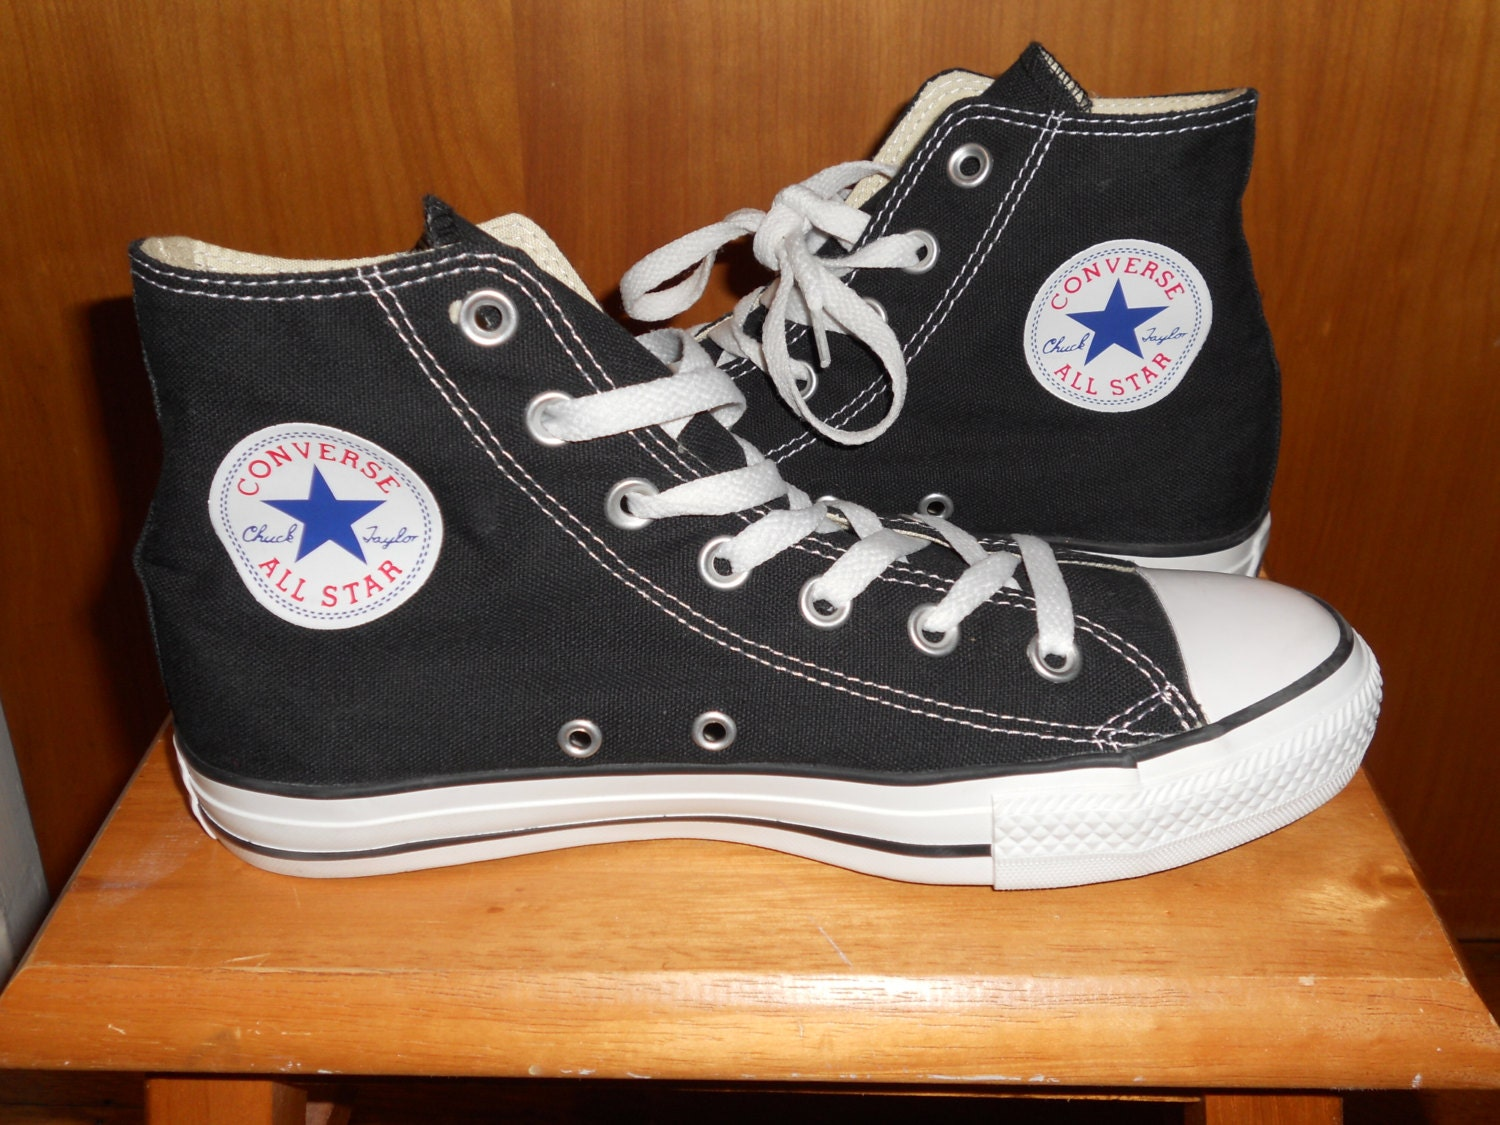 Sexy dating vintage converse porn